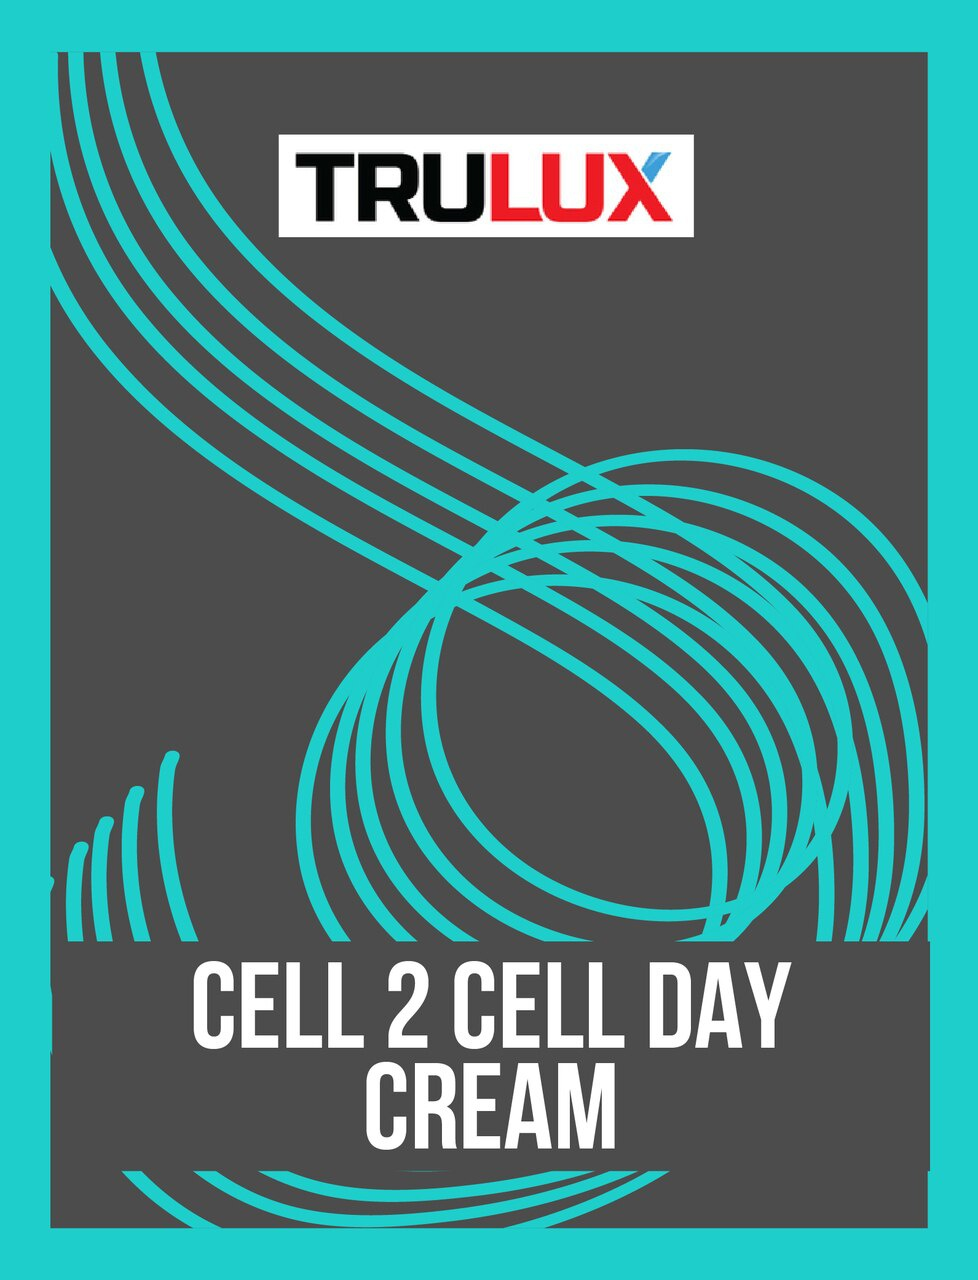 Trulux Cell 2 Cell Day Cream